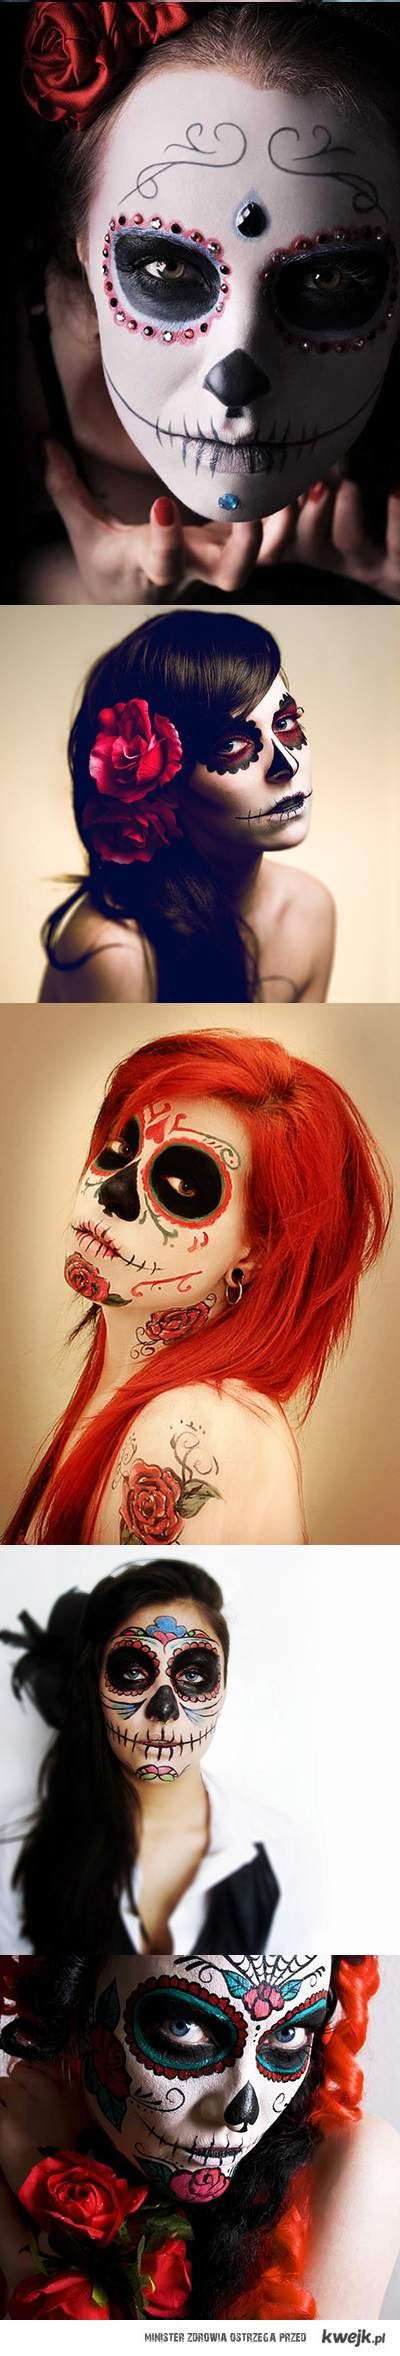 Haloween makeup for me...TJ and I have our zombie costumes already...MWAH HAH HAAAAA....